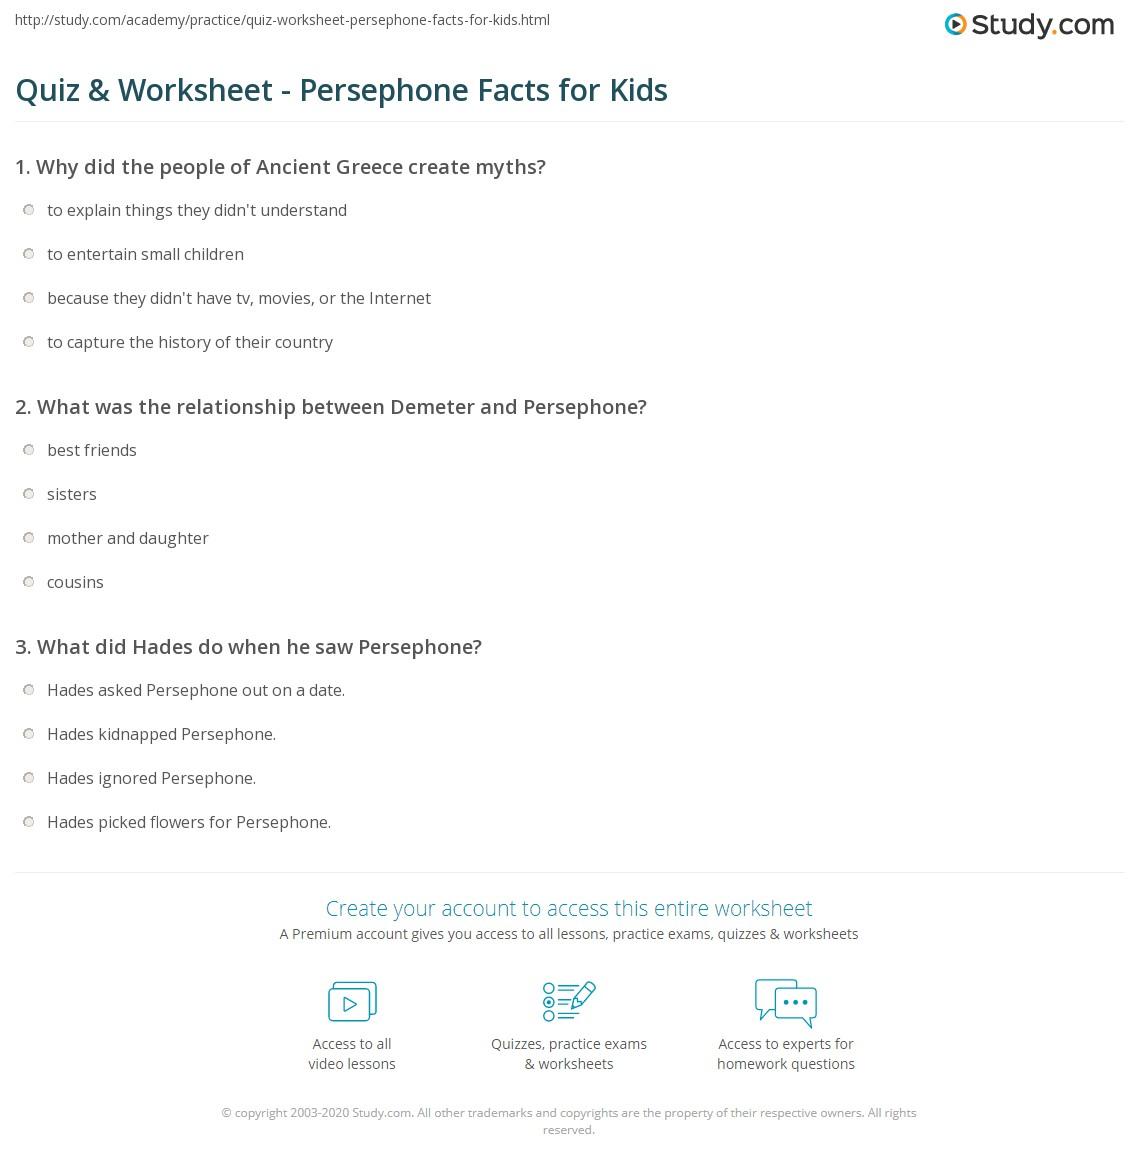 Quiz Worksheet Persephone Facts For Kids Study